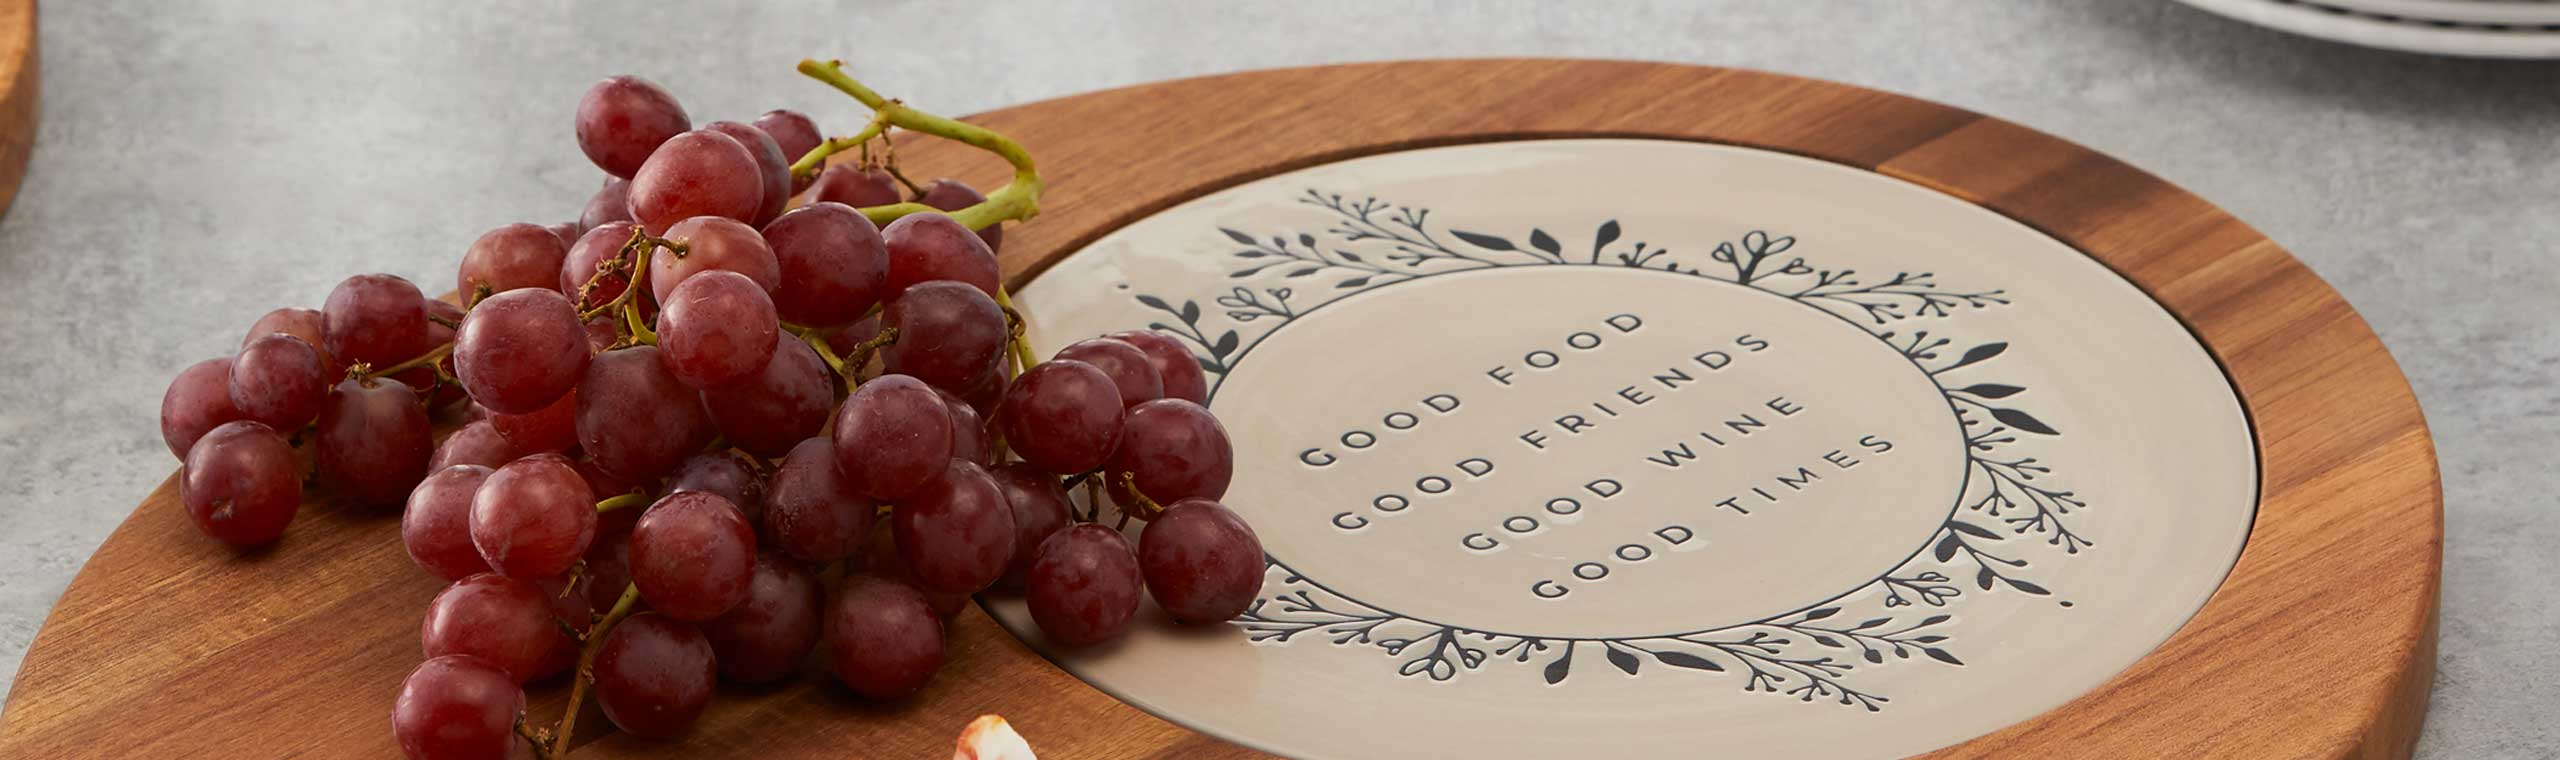 Grape on wood serving platter with ceramic decorative insert